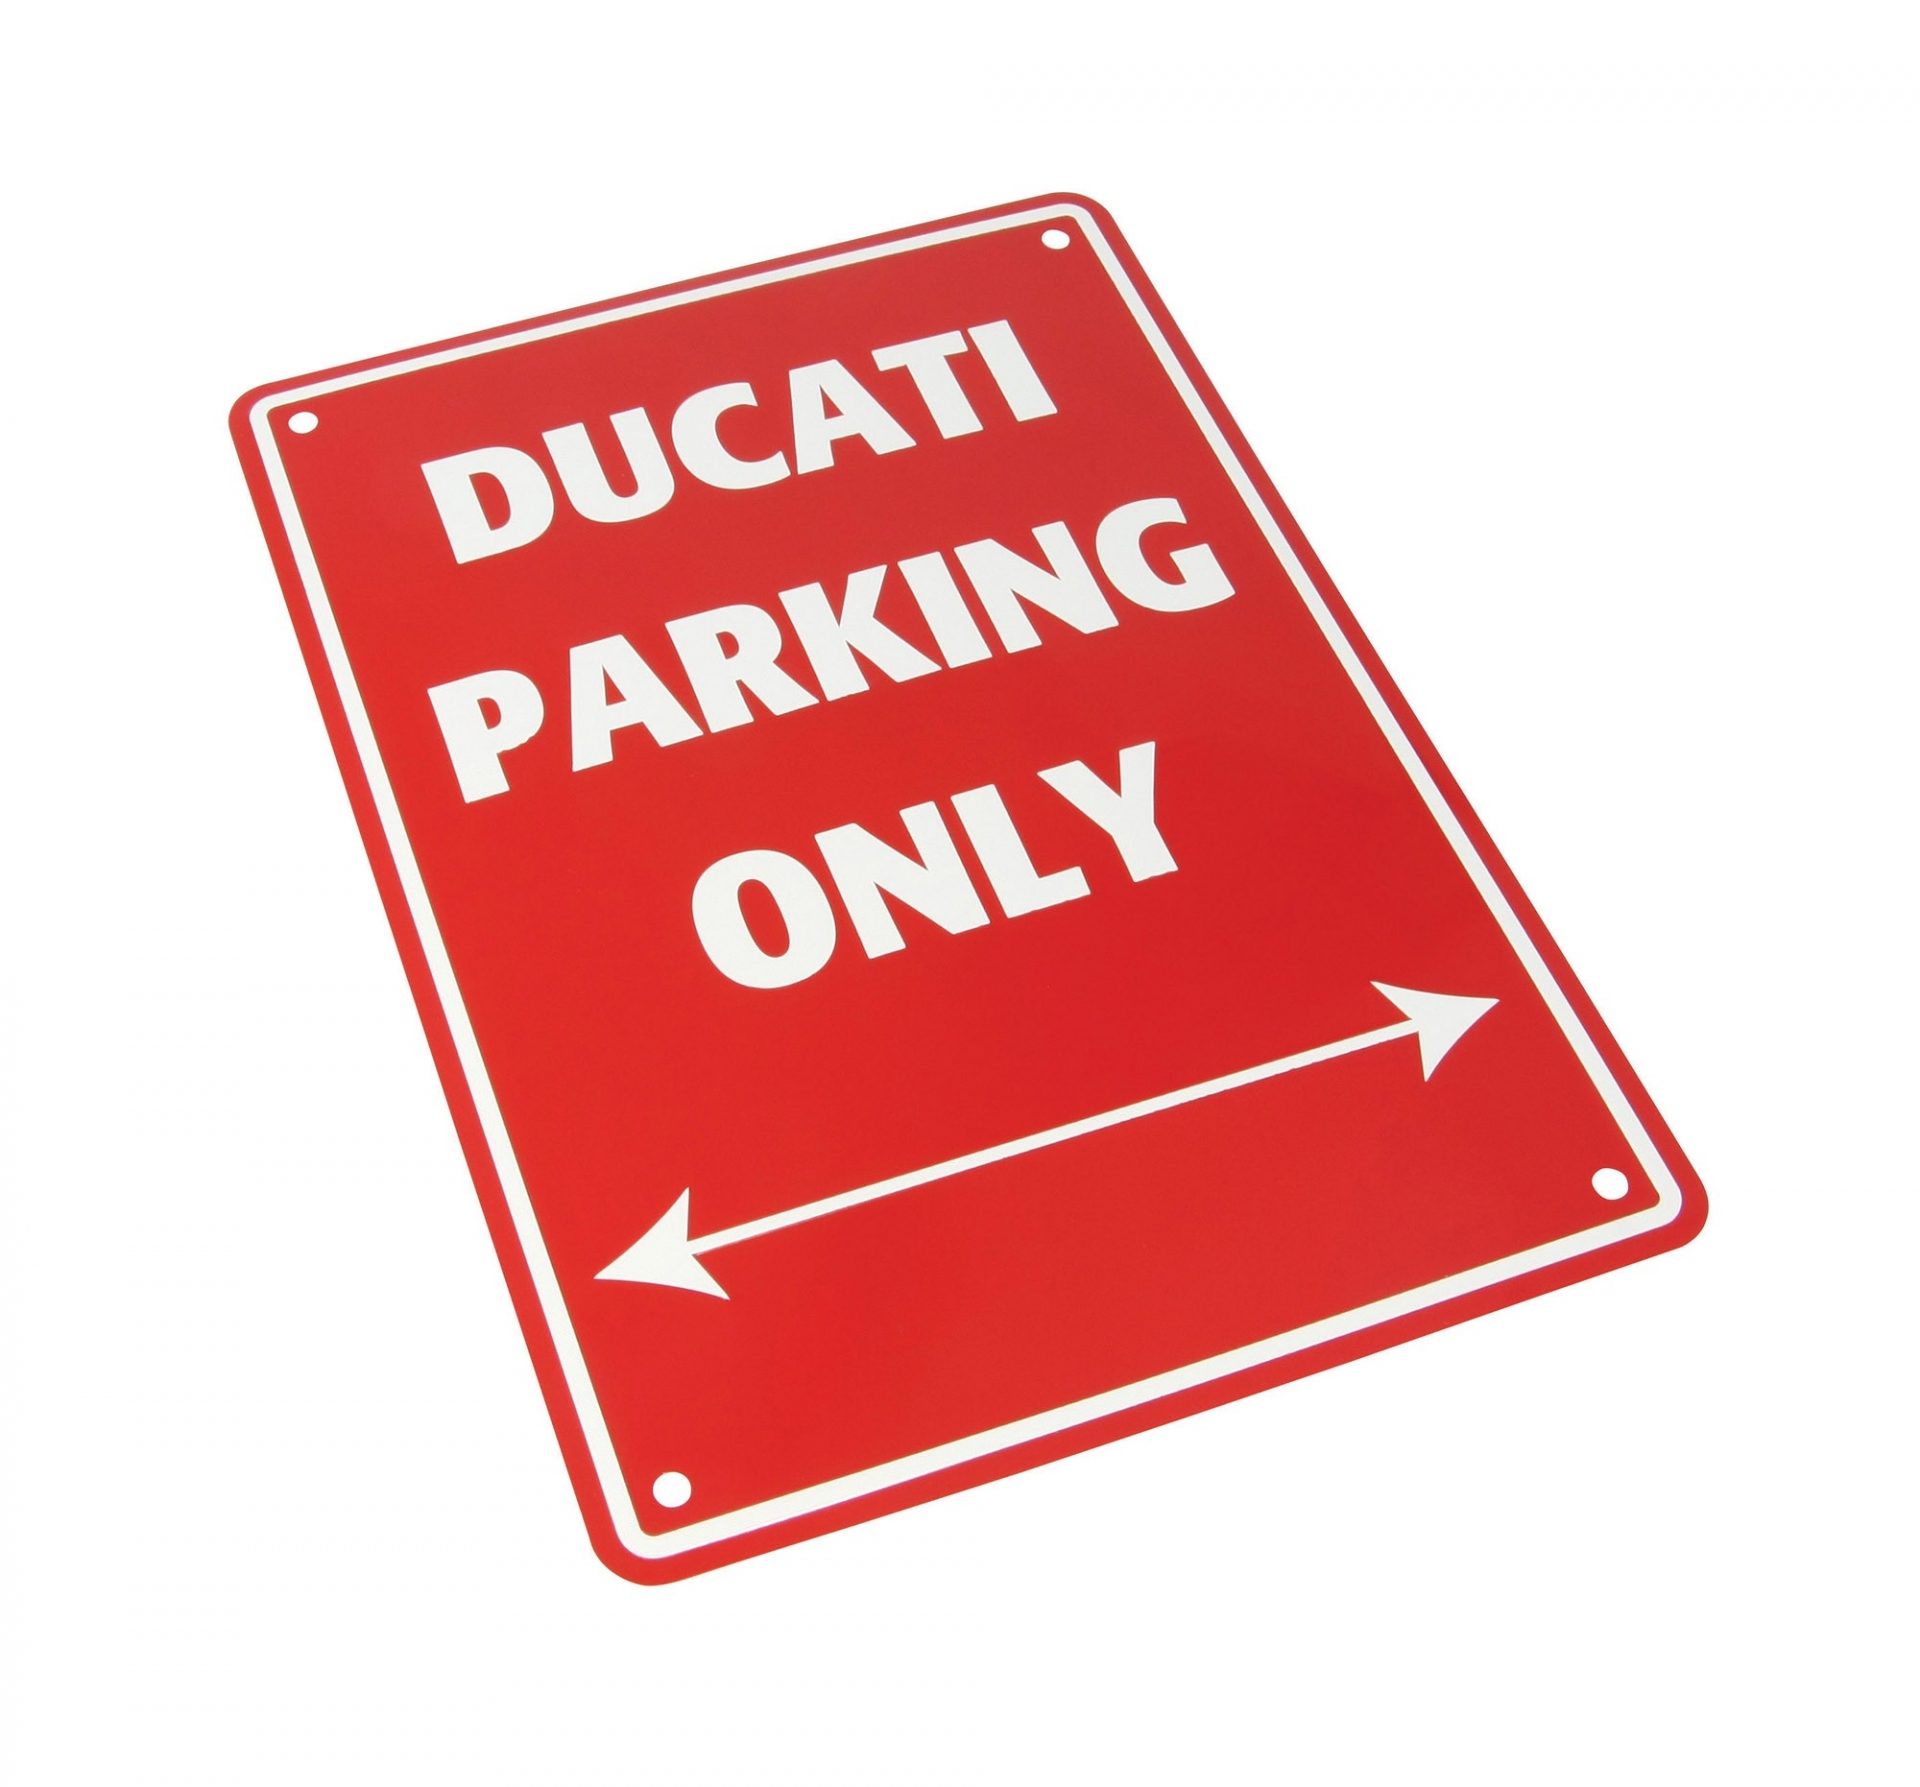 Plaque de parking Ducati parking only